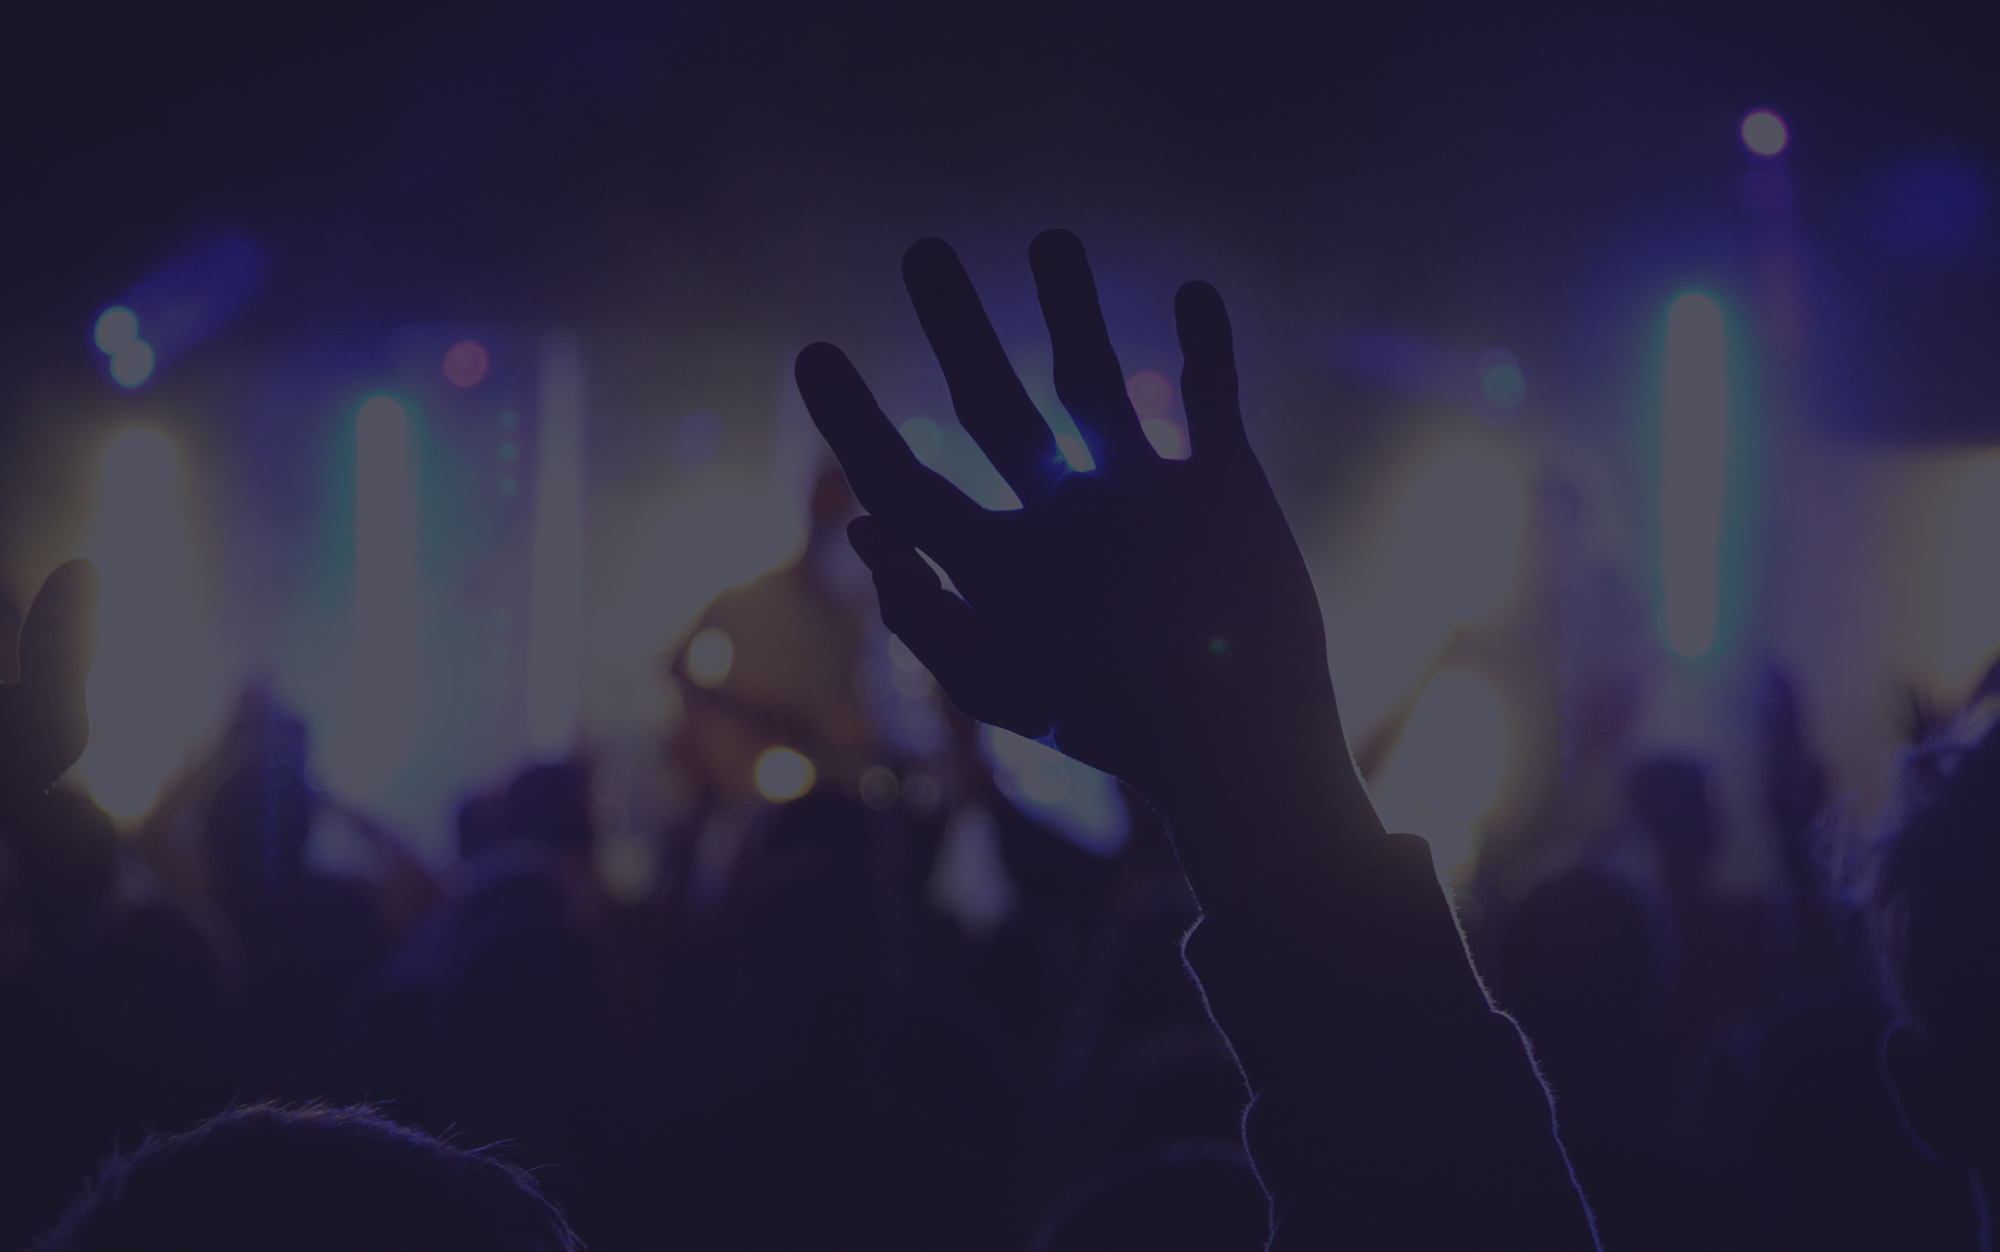 5 Tips to instantly improve your worship leading - FREE AUDIO TRAINING: Discover 5 simple tips that will instantly improve your worship leading.